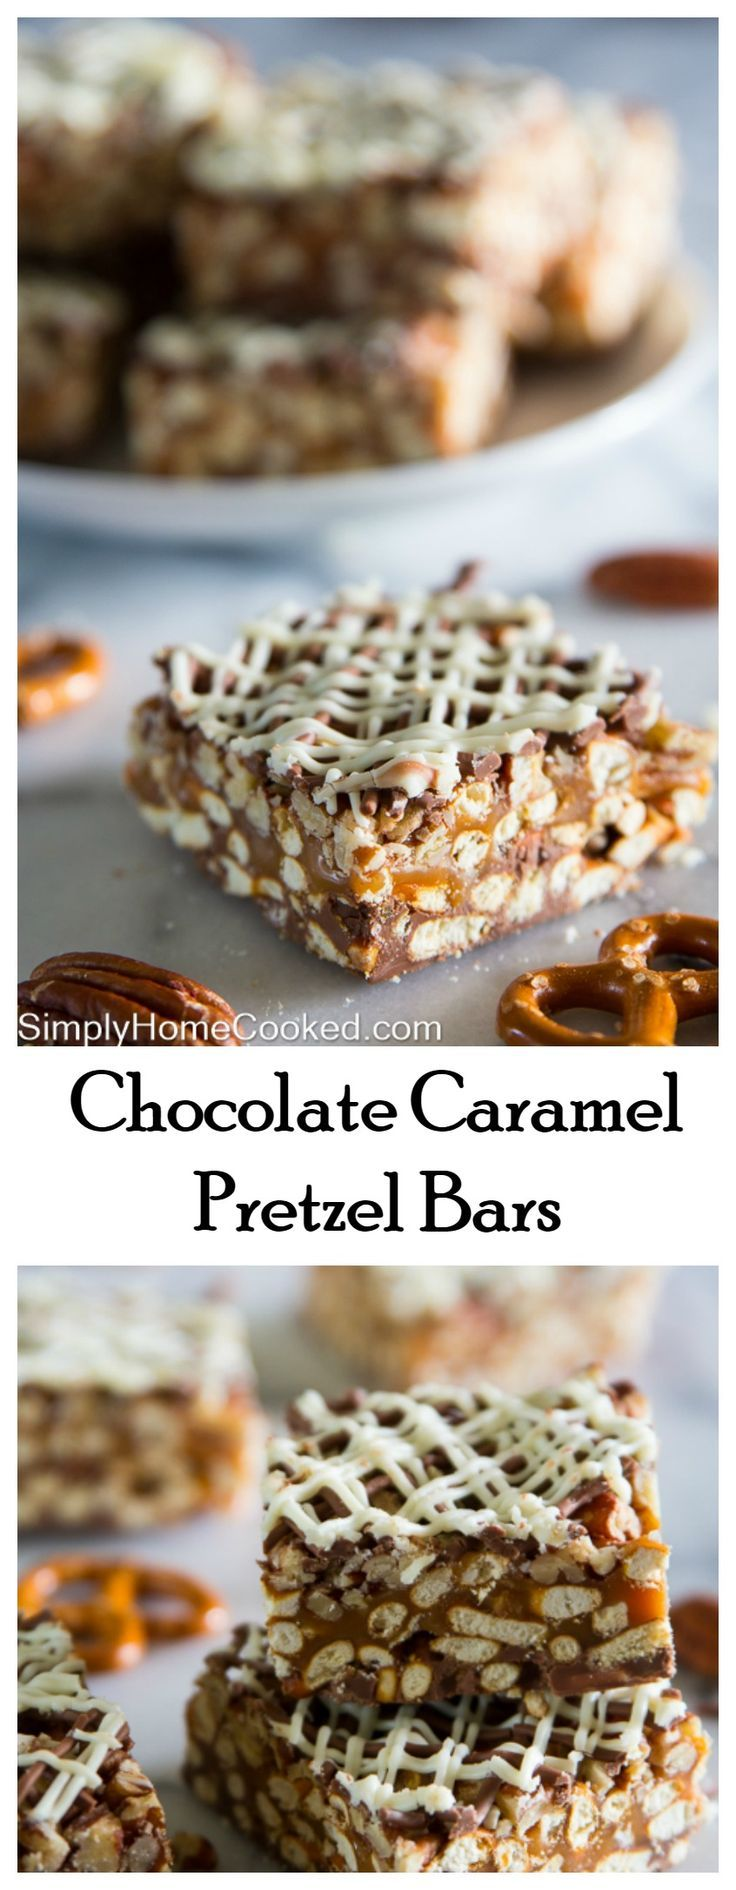 Chocolate caramel pretzel bars! Only 4 ingredients in these no-bake bars!